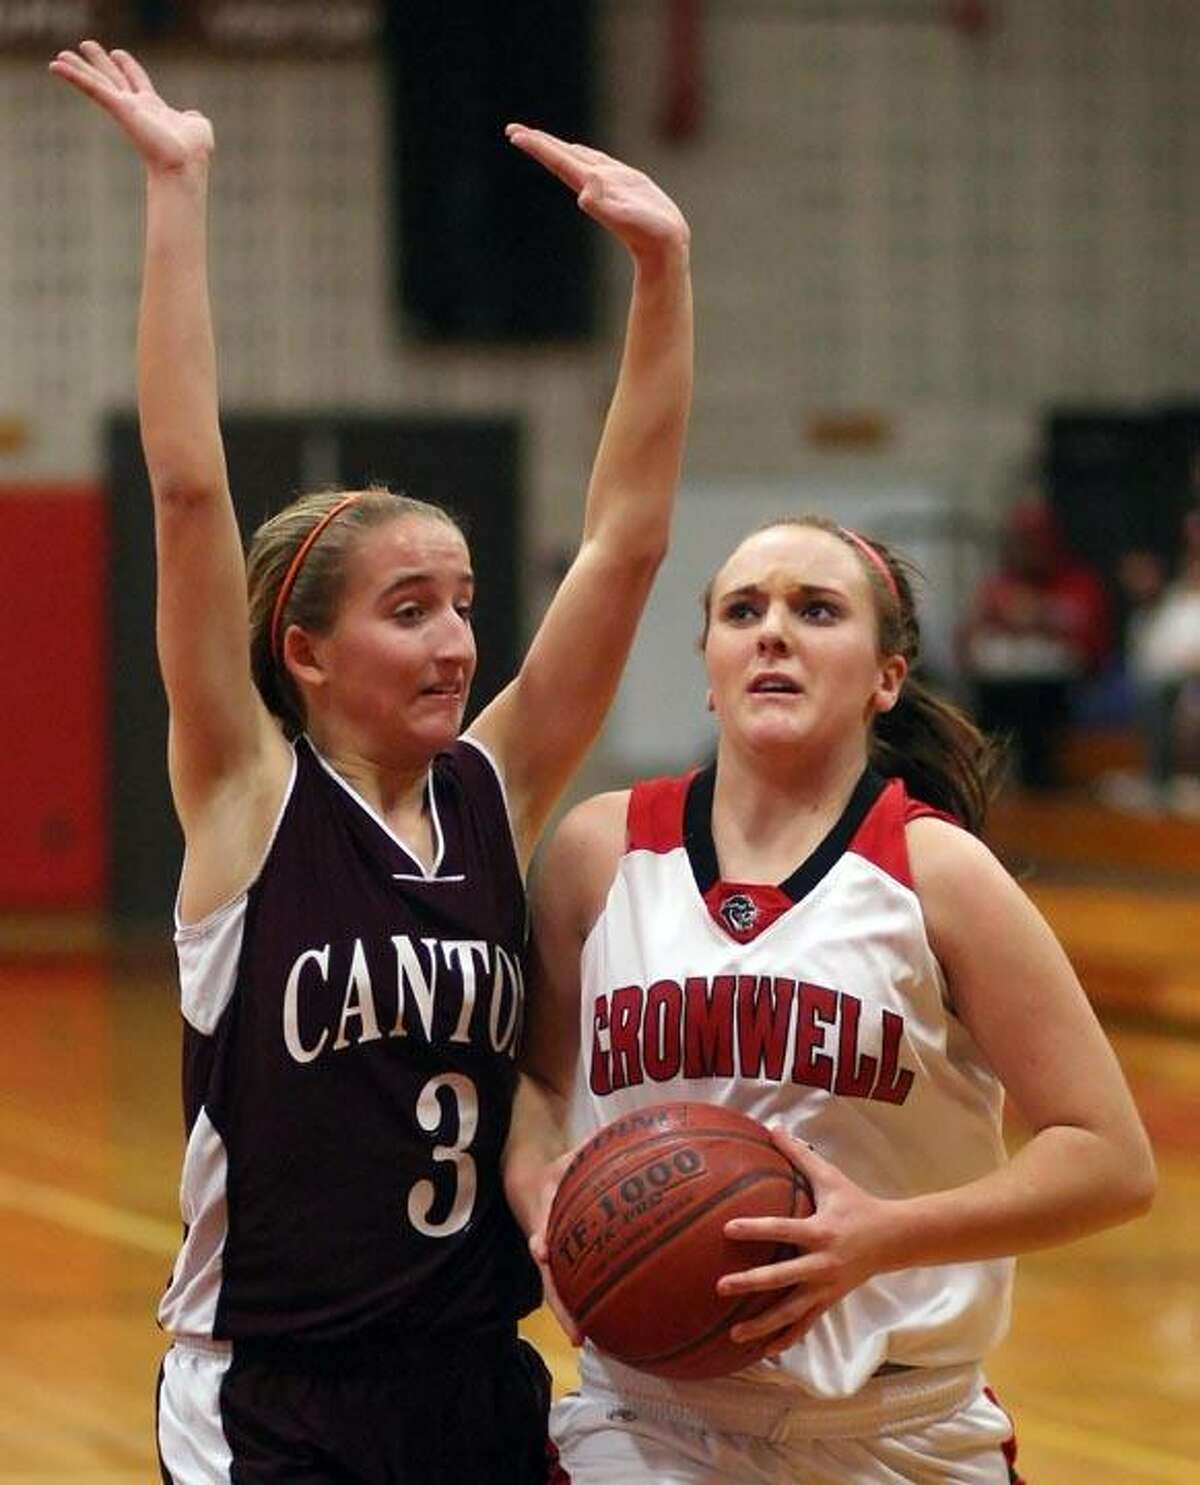 Special to the Press 12.30.11. Cromwell's Alexa Riley drives the baseline past Canton's Amanda Curvino in Friday's basketball game. Cromwell won, 67-23. To buy a glossy print of this photo and more, visit www.middletownpress.com